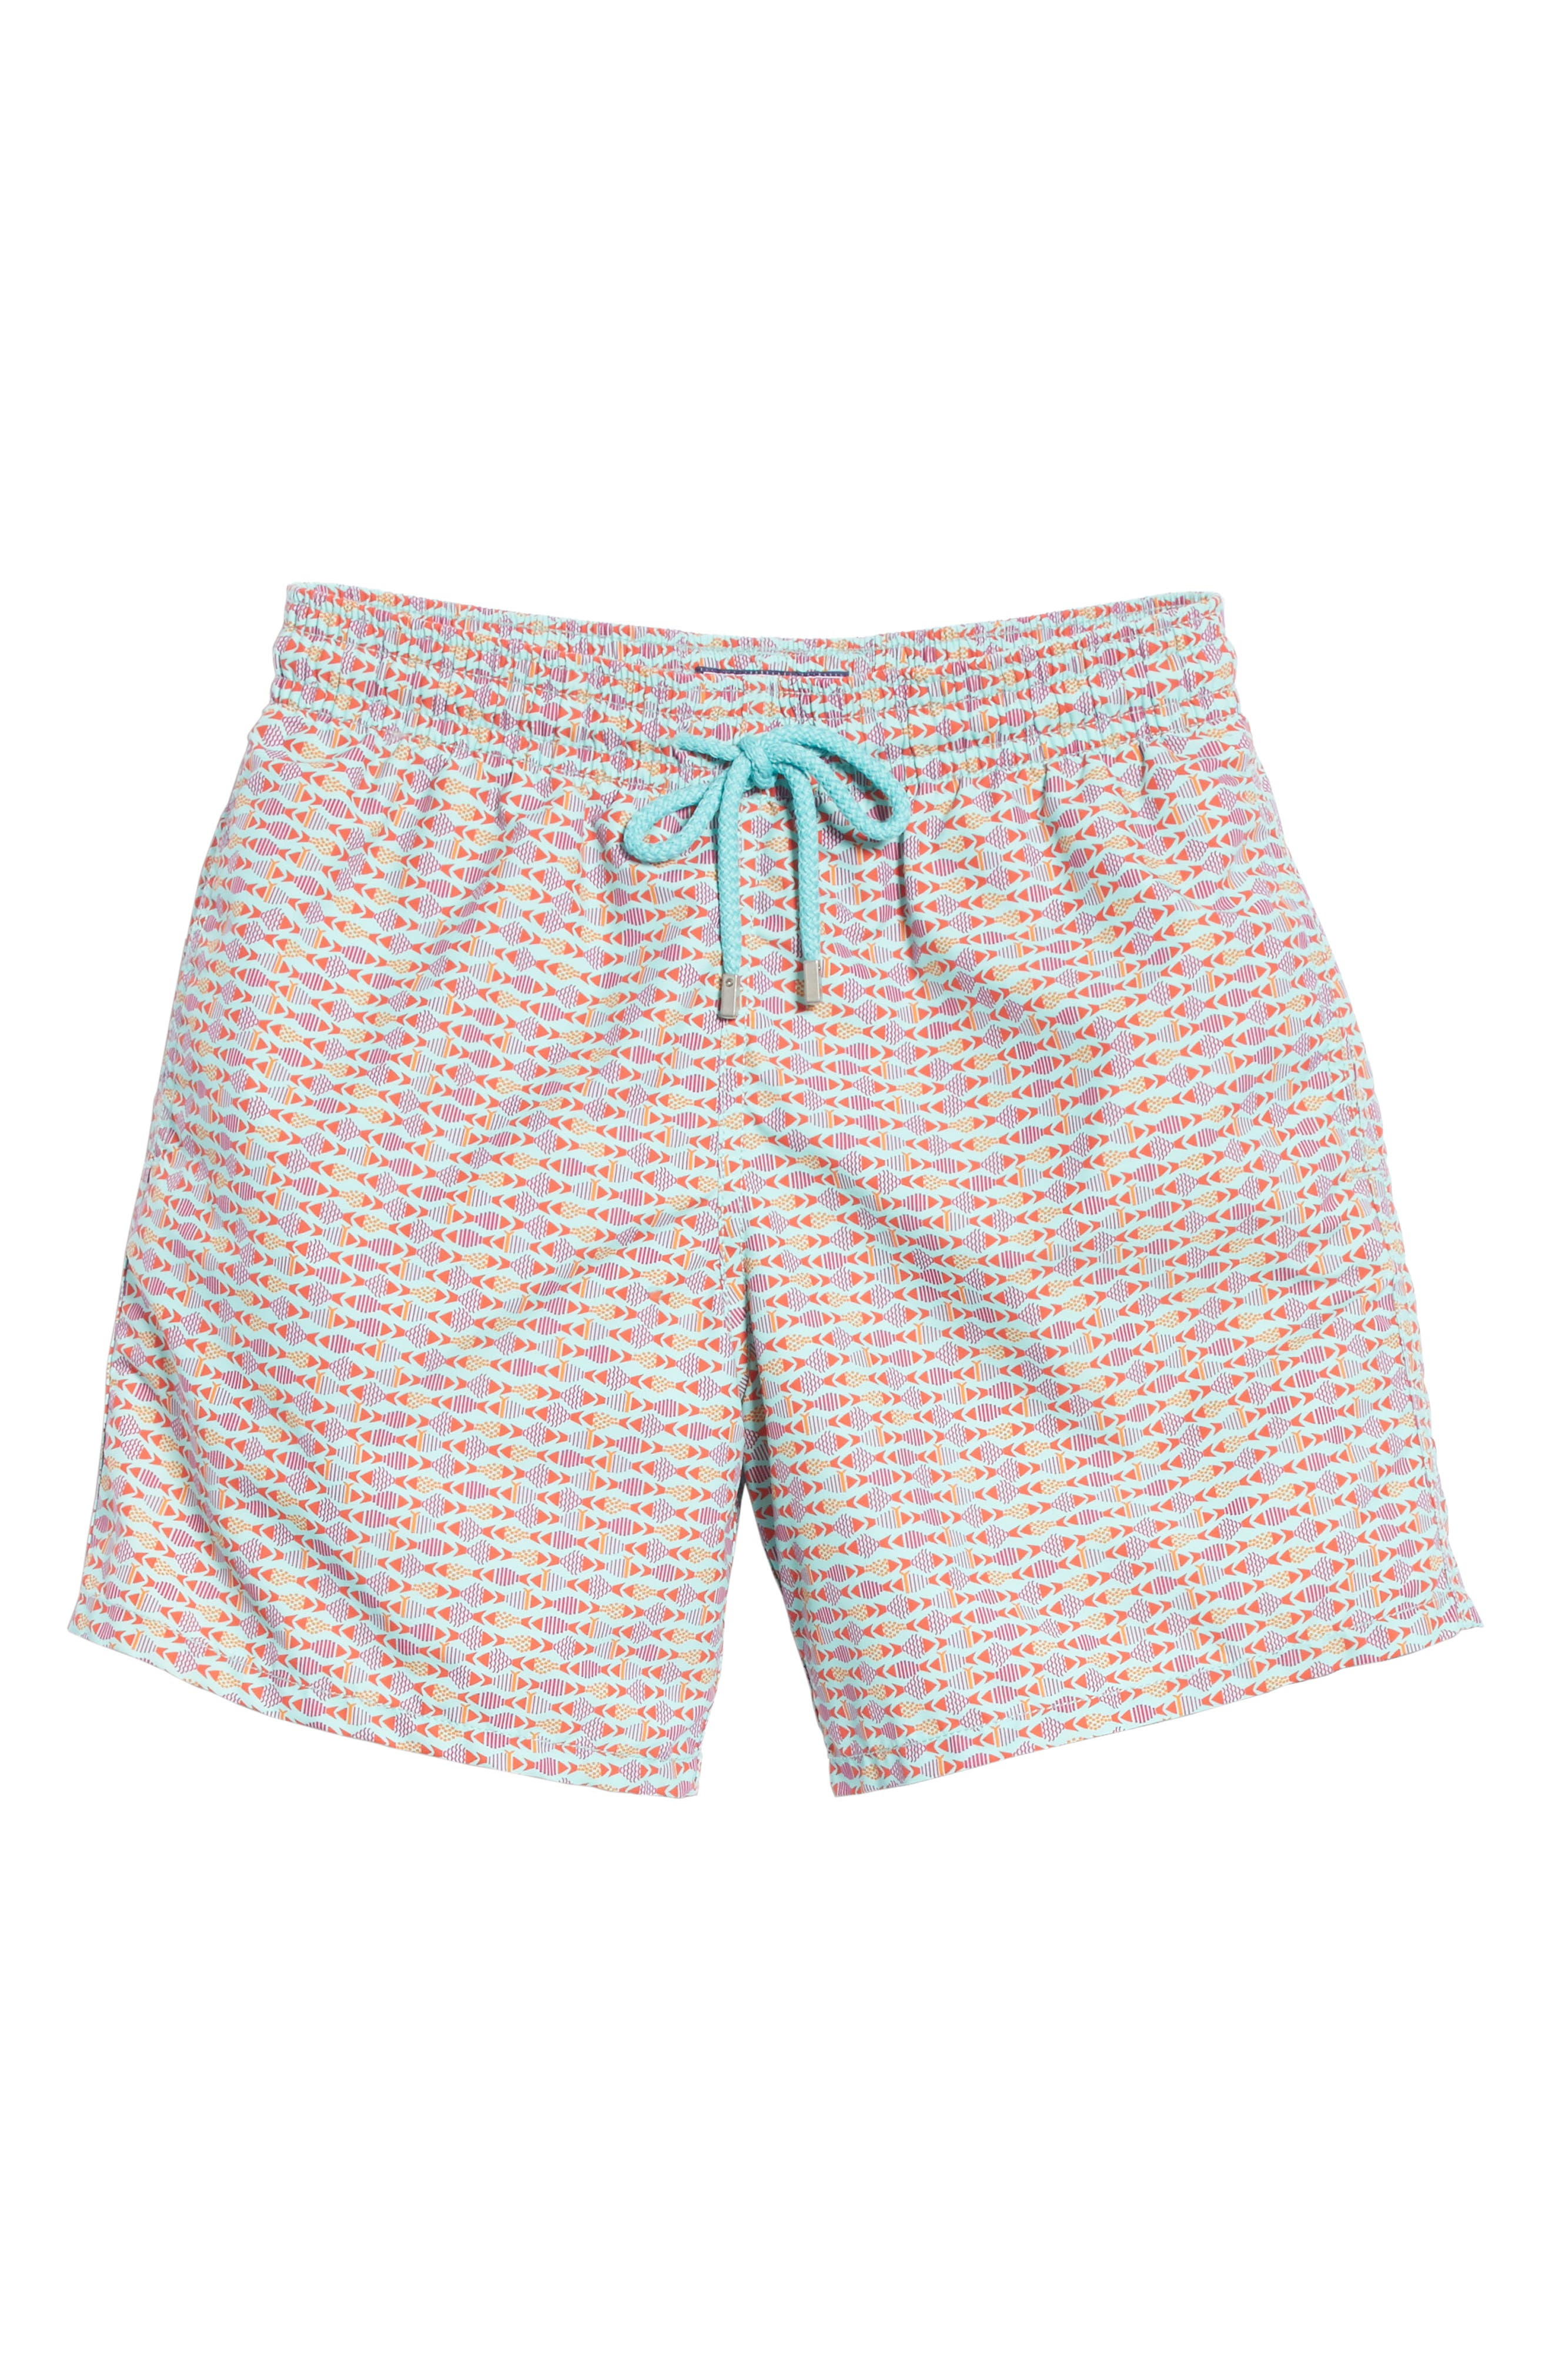 Modernist Fish Print Swim Trunks,                             Alternate thumbnail 6, color,                             LAGOON